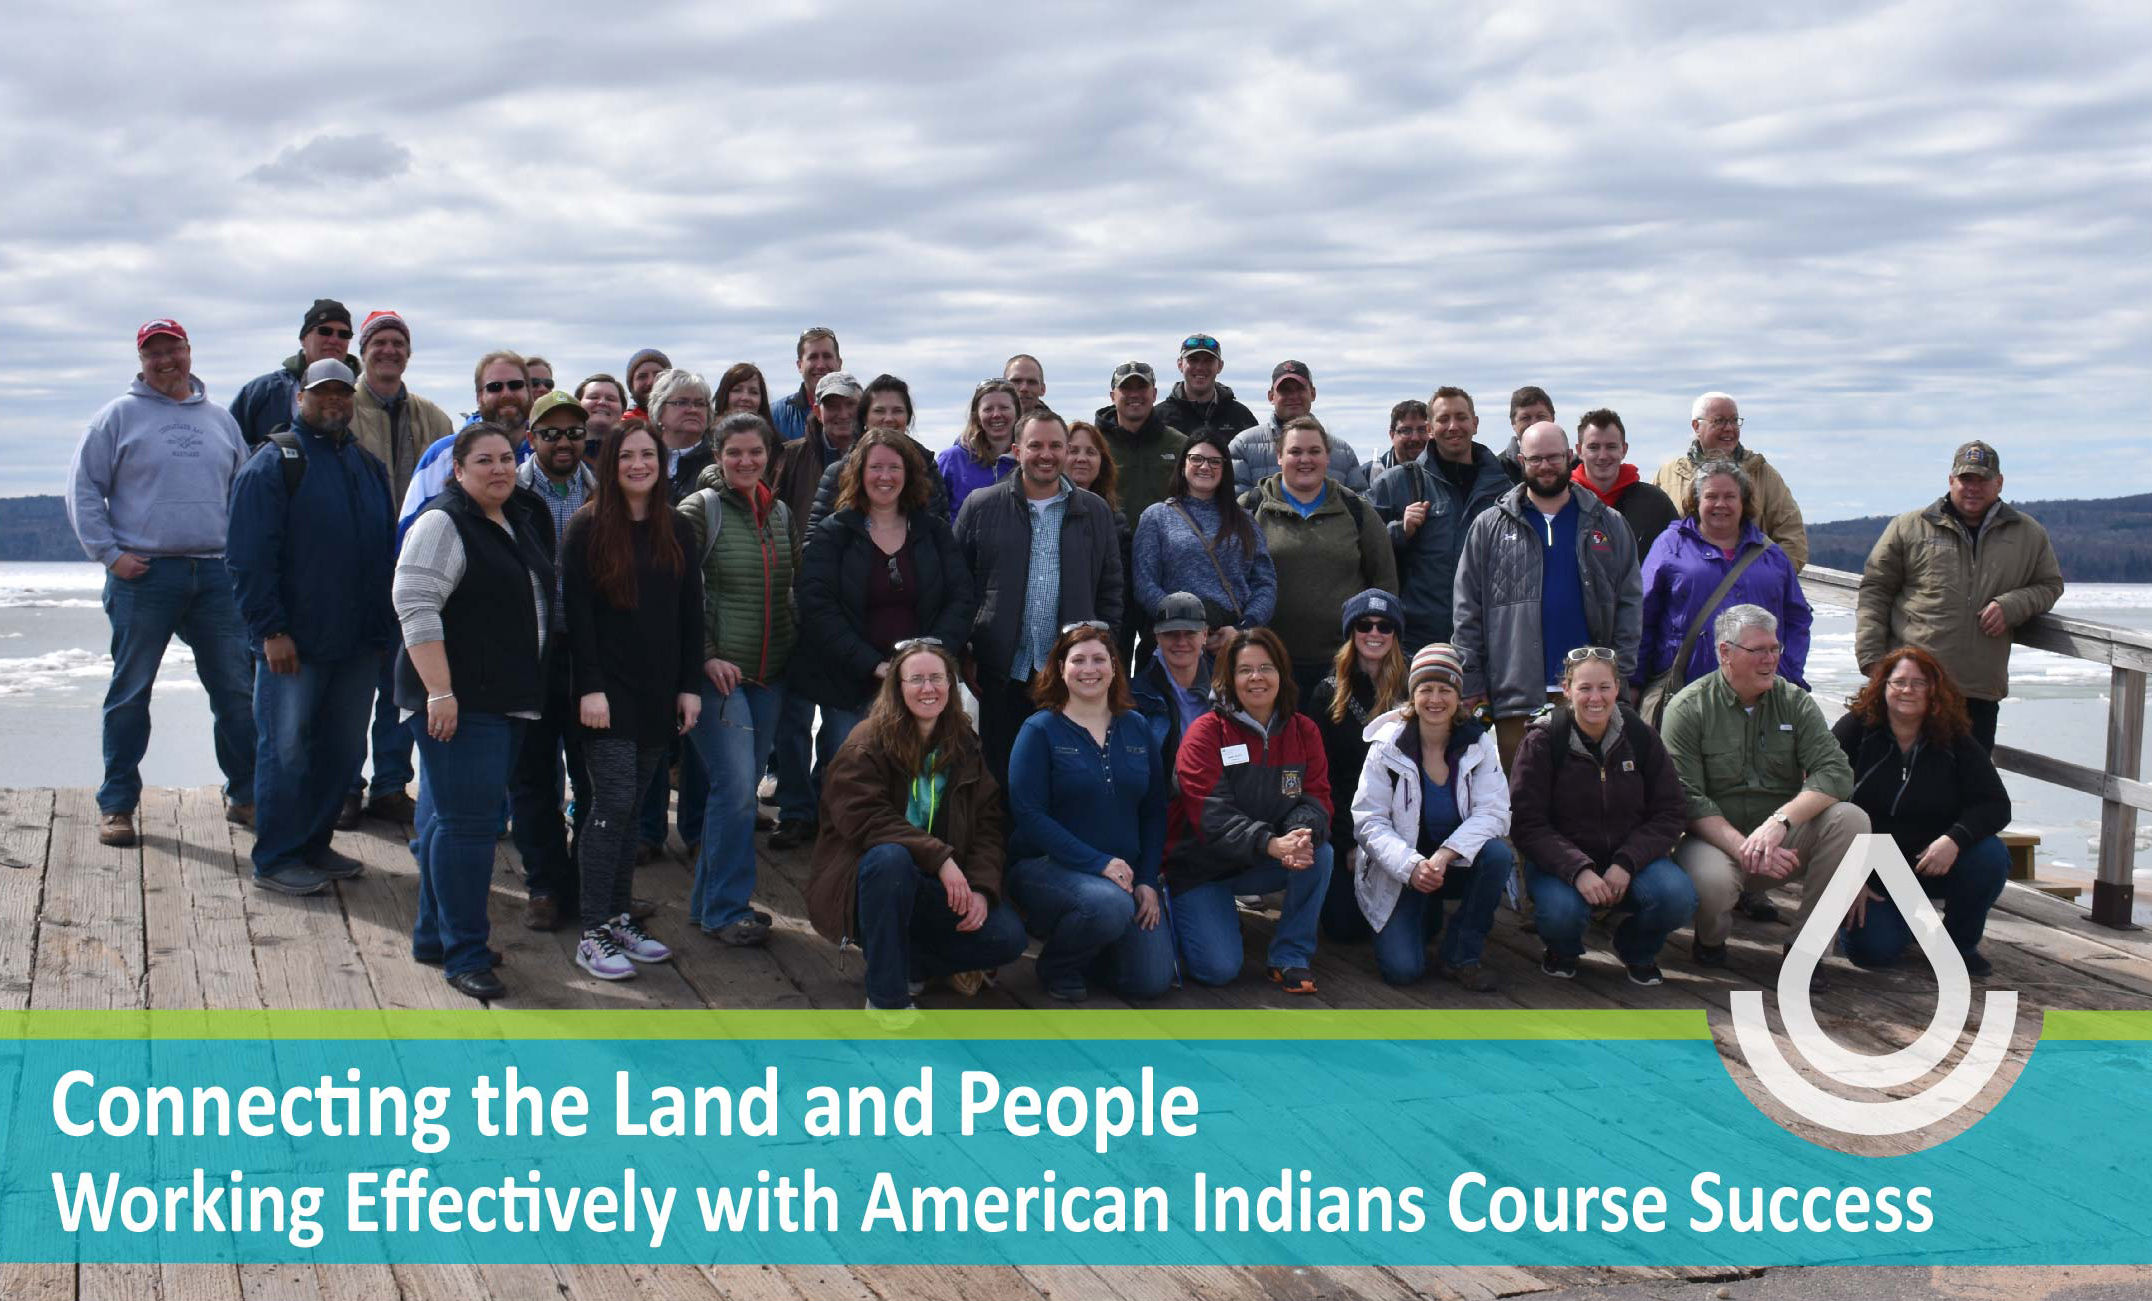 Working Effectively with American Indians Course Success